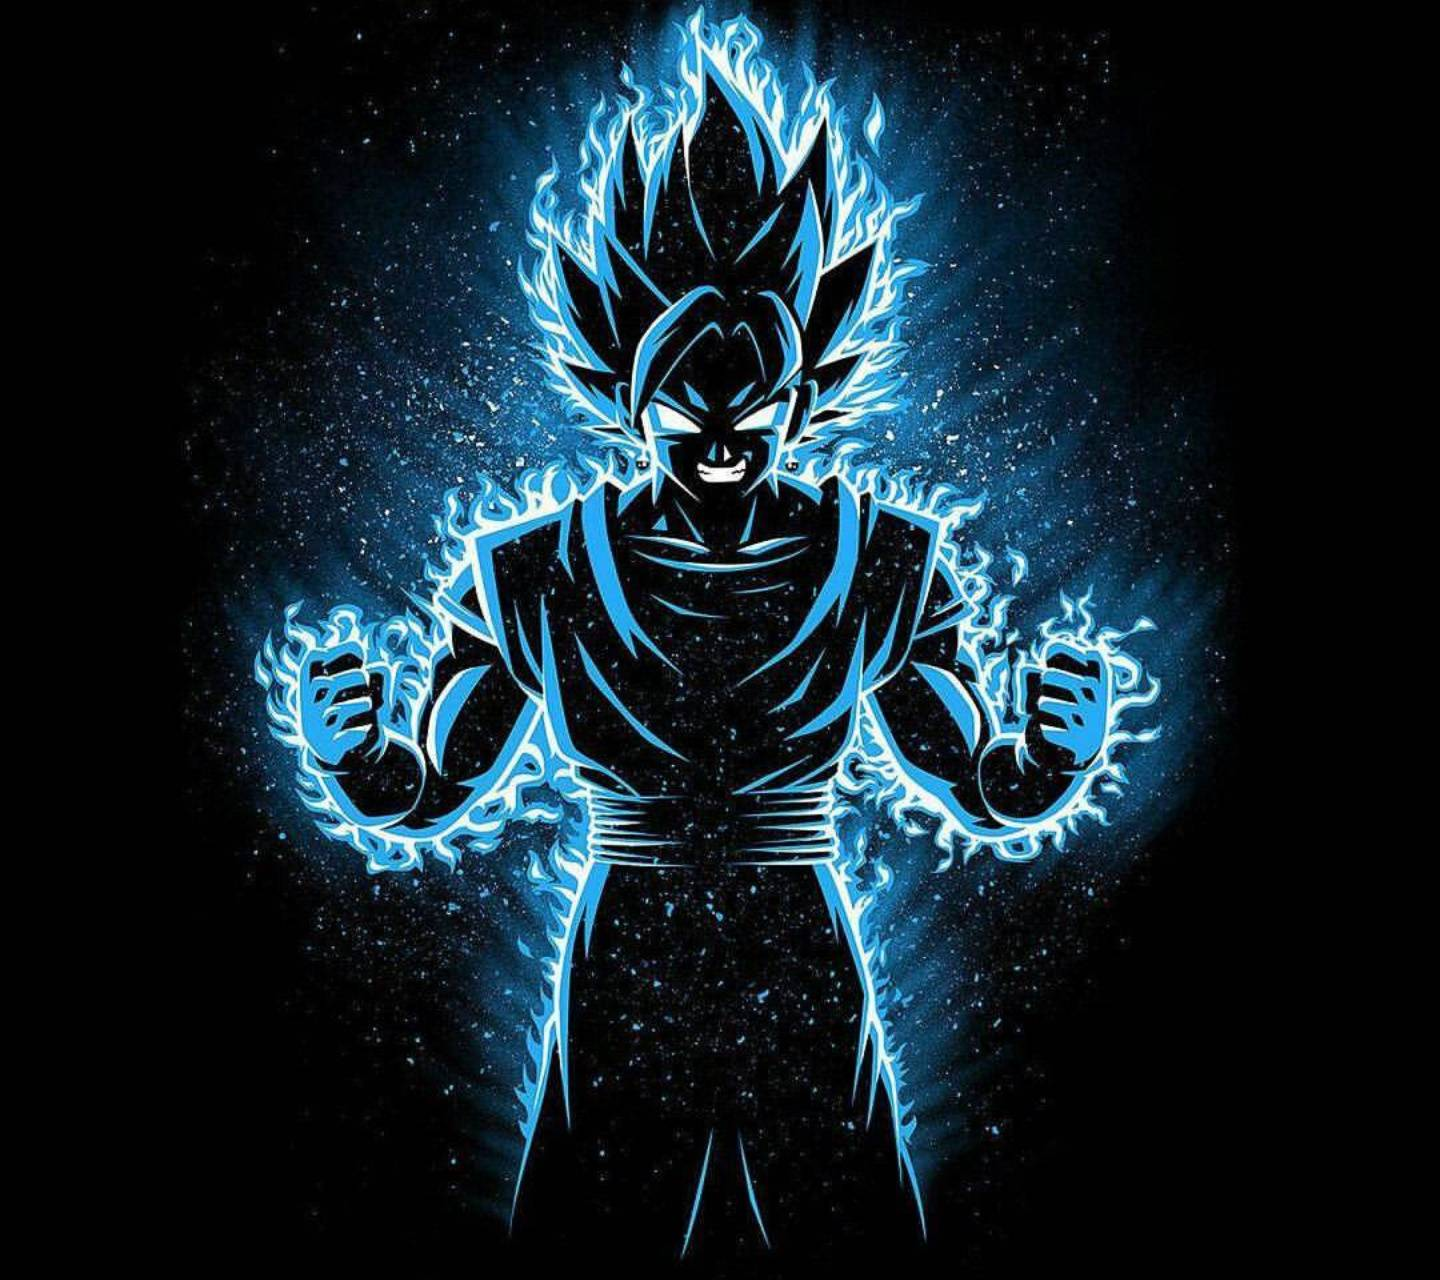 Download free dragon ball z wallpapers for your mobile phone top dragon ball z voltagebd Choice Image